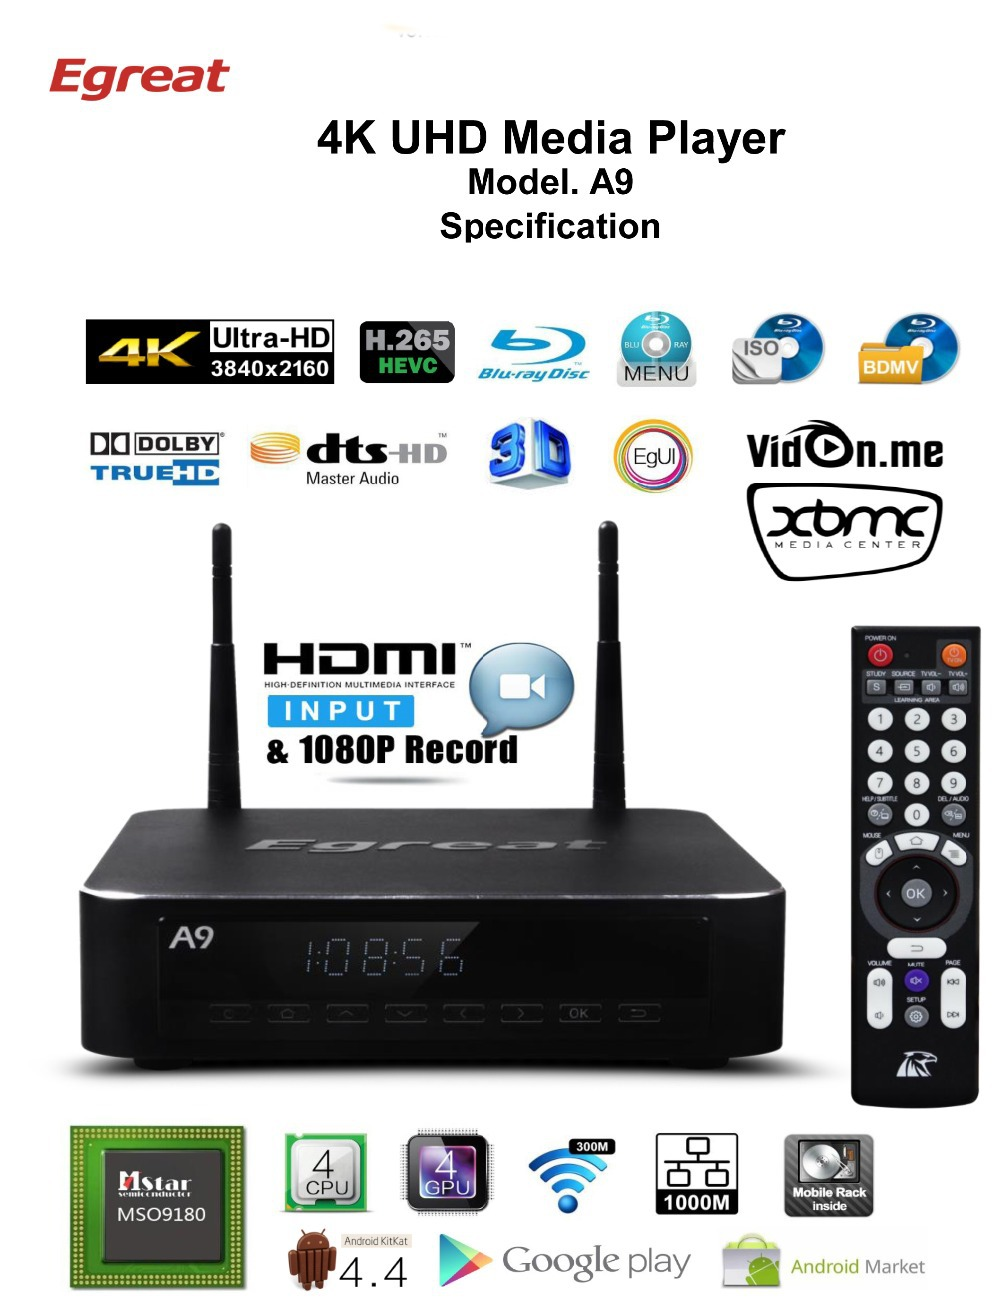 Egreat A9 4K Media Player Mstar MSO9180 2G/16G 2.4G/5G WIFI 3D Dolby DTS 7.1 RAW SATA USB3.0 Bluetooth SEW3.0 Android 4.4 system(China (Mainland))